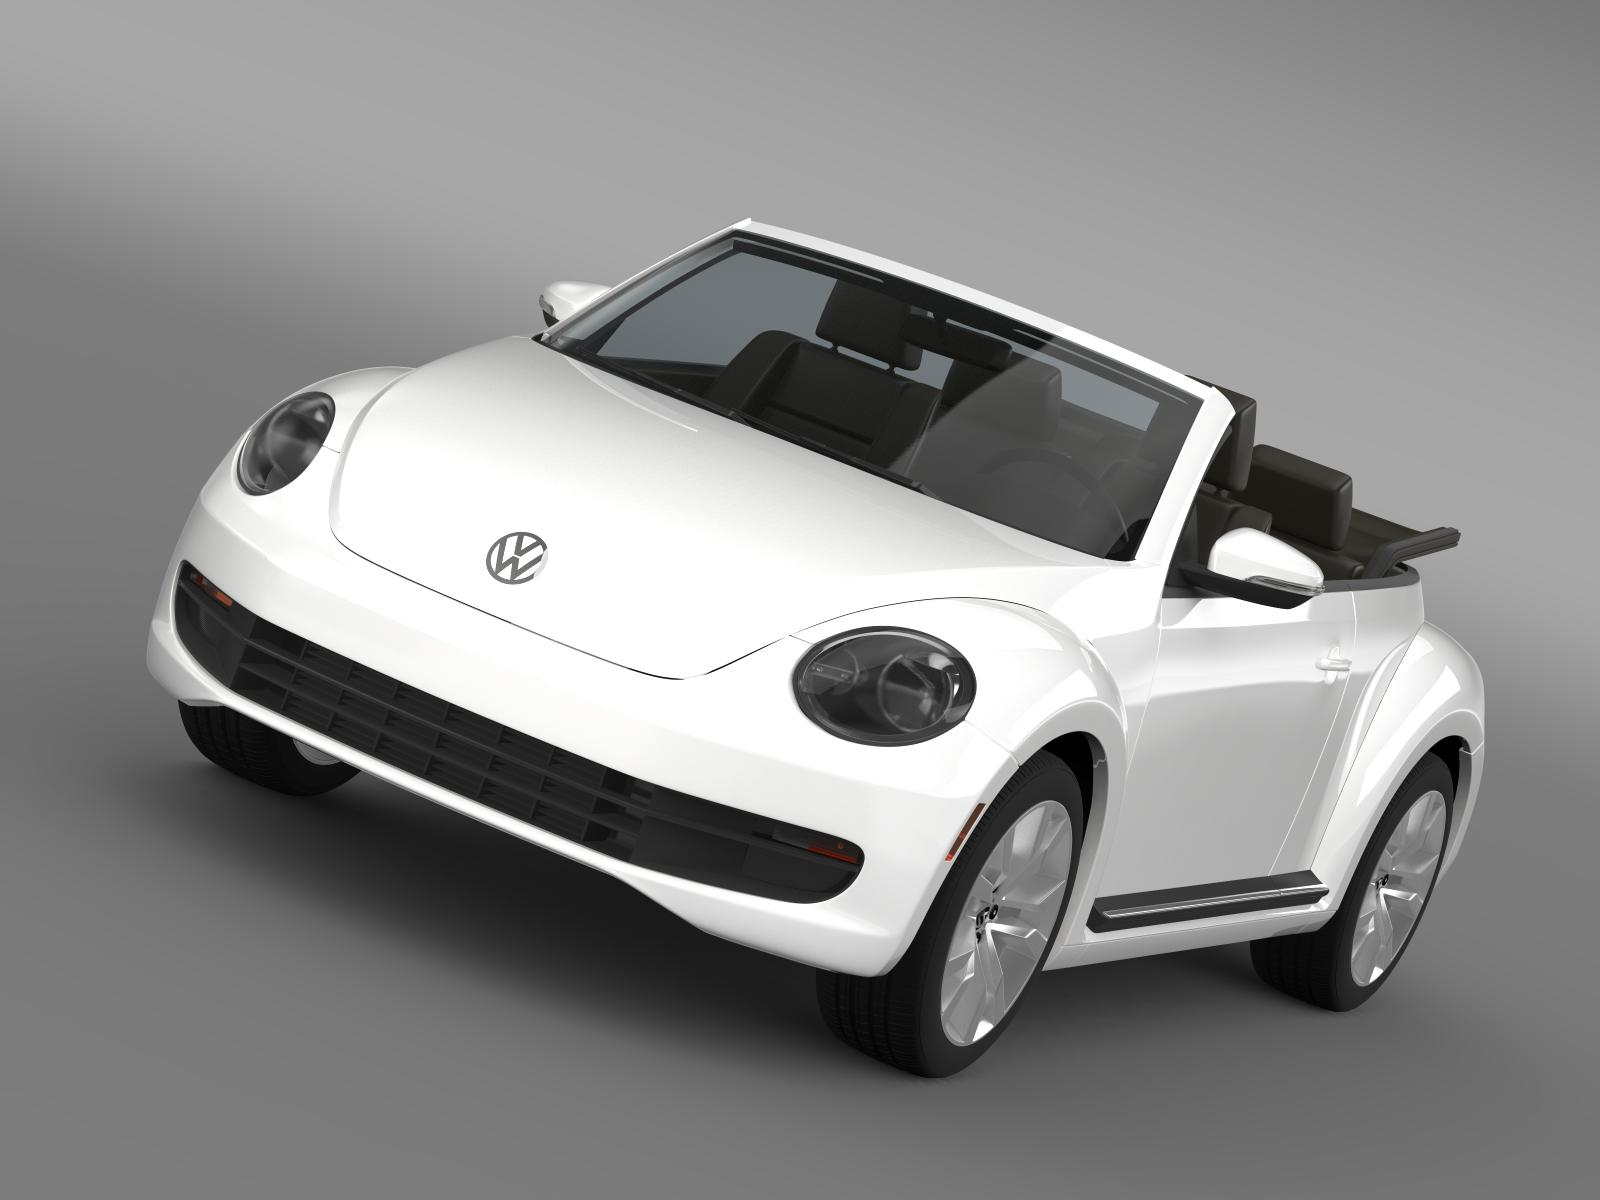 vw beetle tdi cabrio 2014 3d model 3ds max fbx c4d